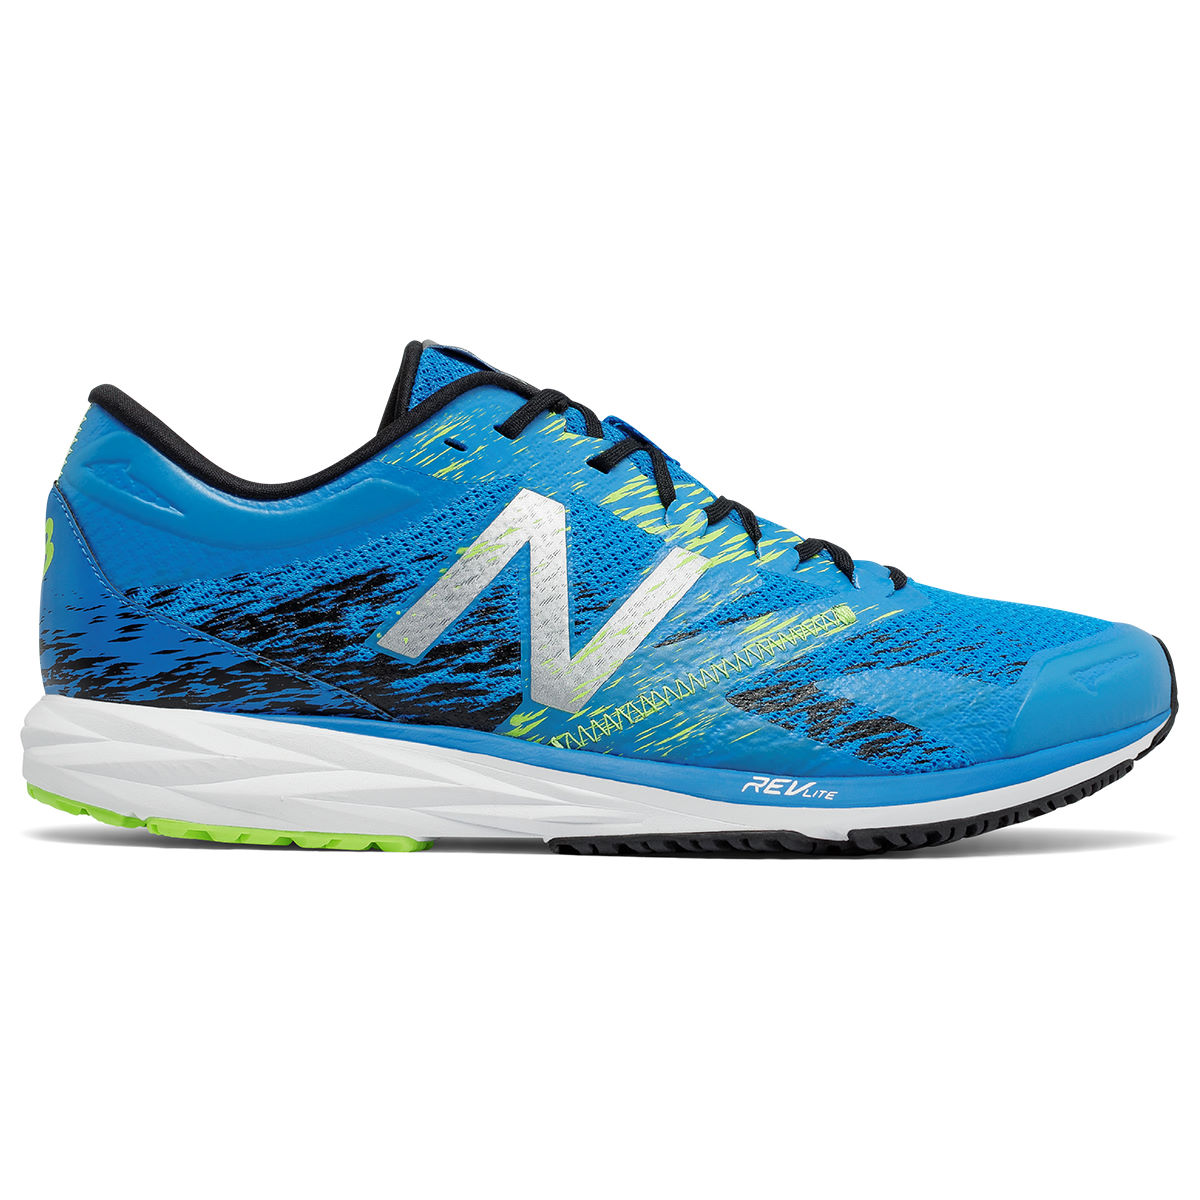 New balance strobe shoes racing running shoes blue aw17 mstrole1 7